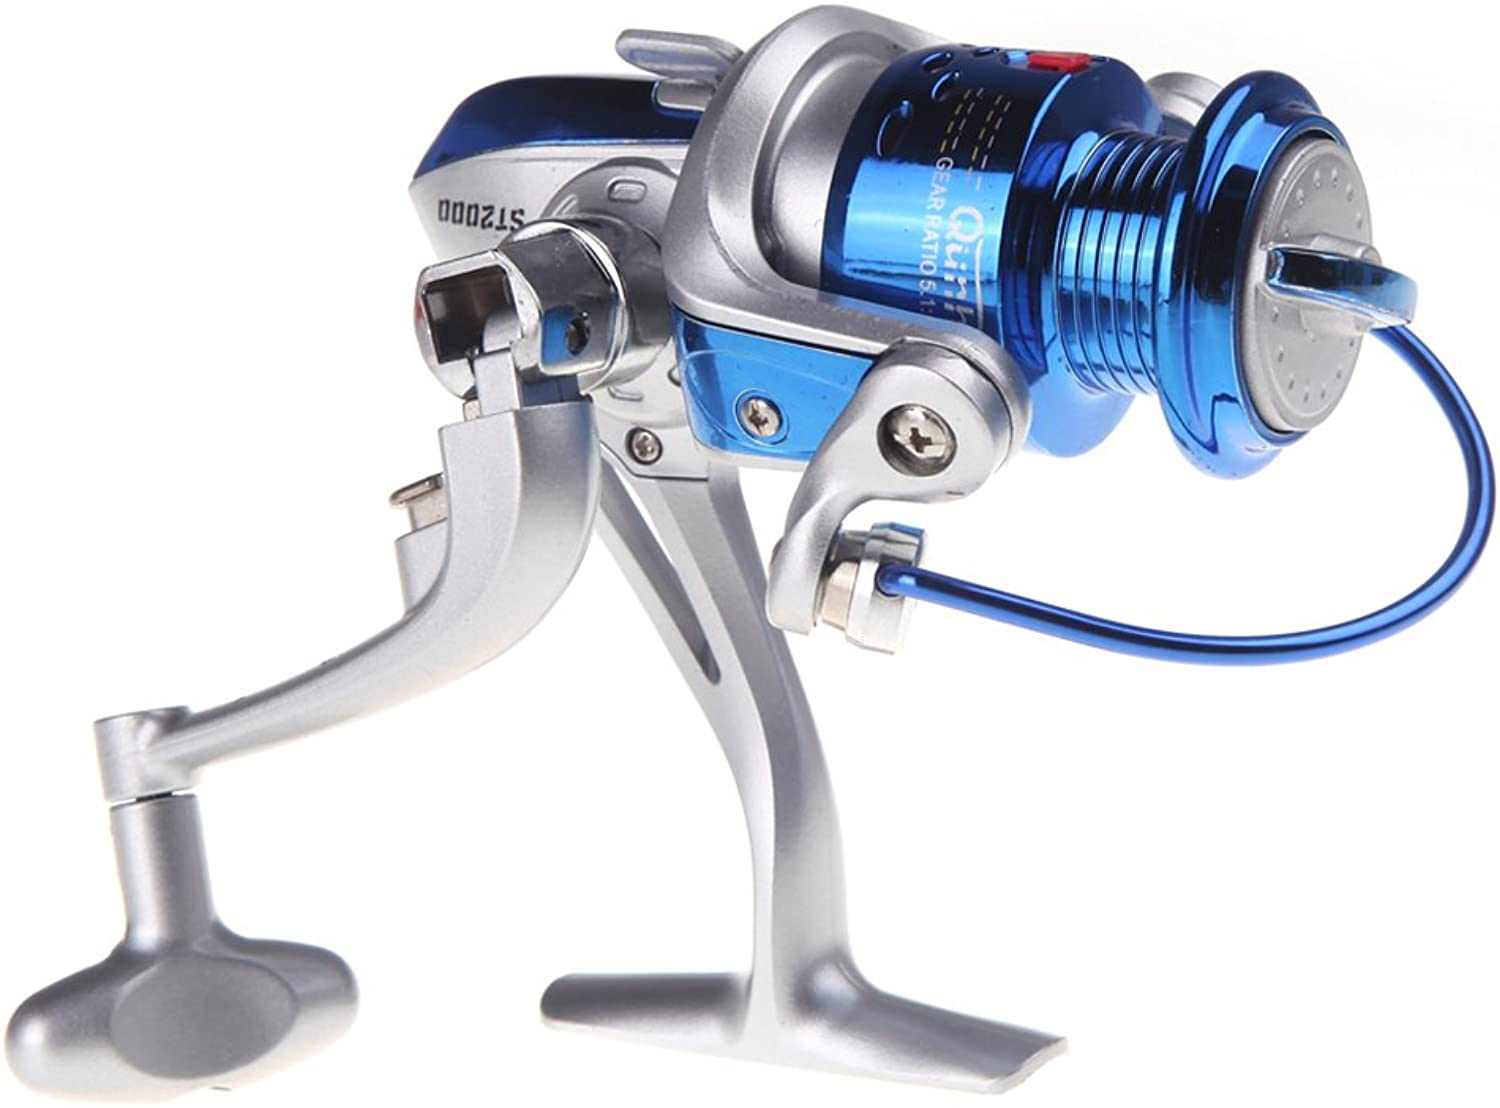 Heng Heng  8BB Ball Bearings ST2000 Left Right Interchangeable Collapsible Handle Fly Fishing Spinning Reel 5.1 1 bluee  HNGBGSPT000446